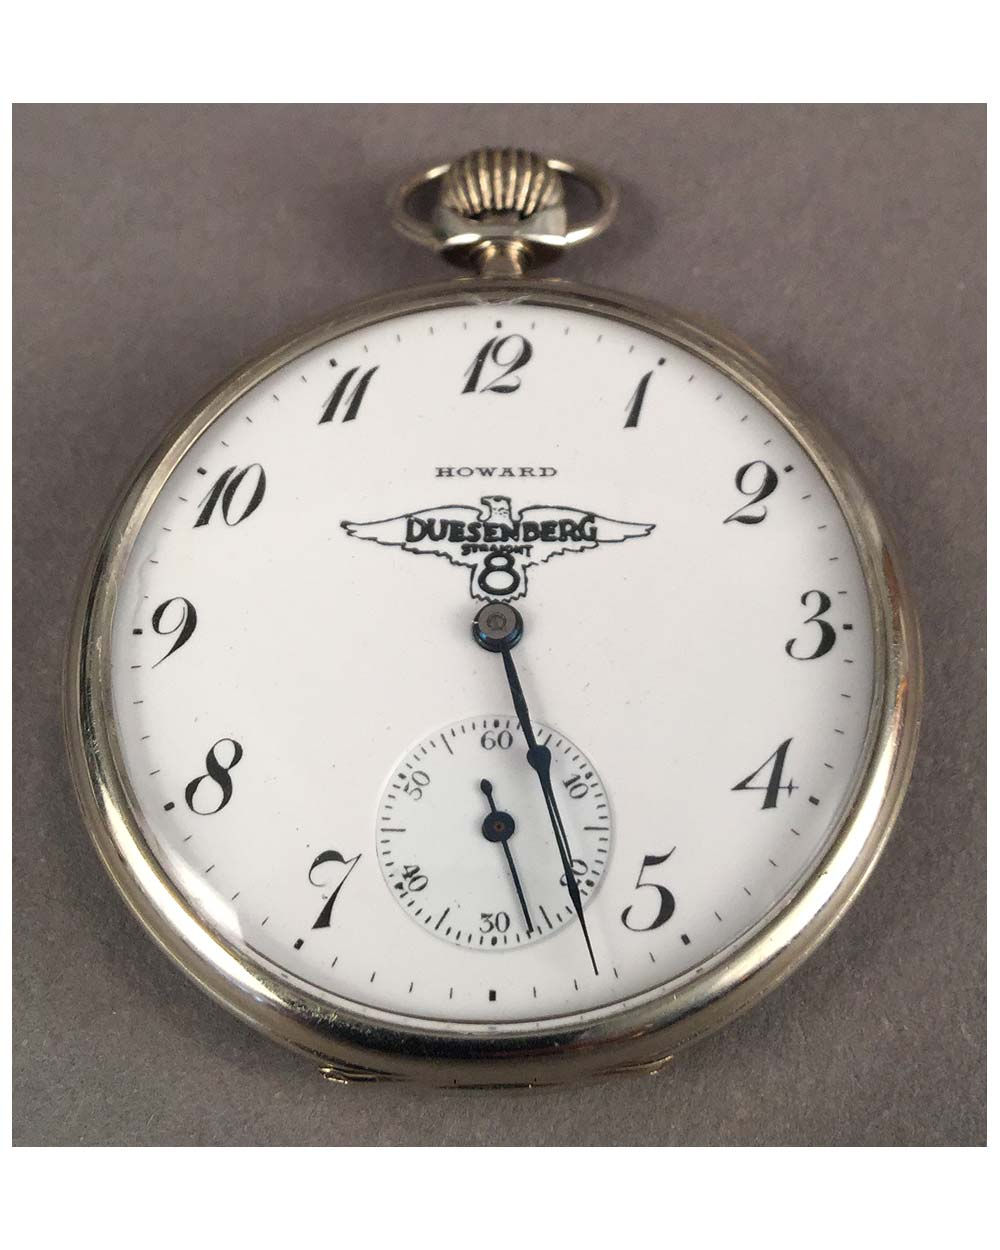 Duesenberg pocket watch By Howard, 1917